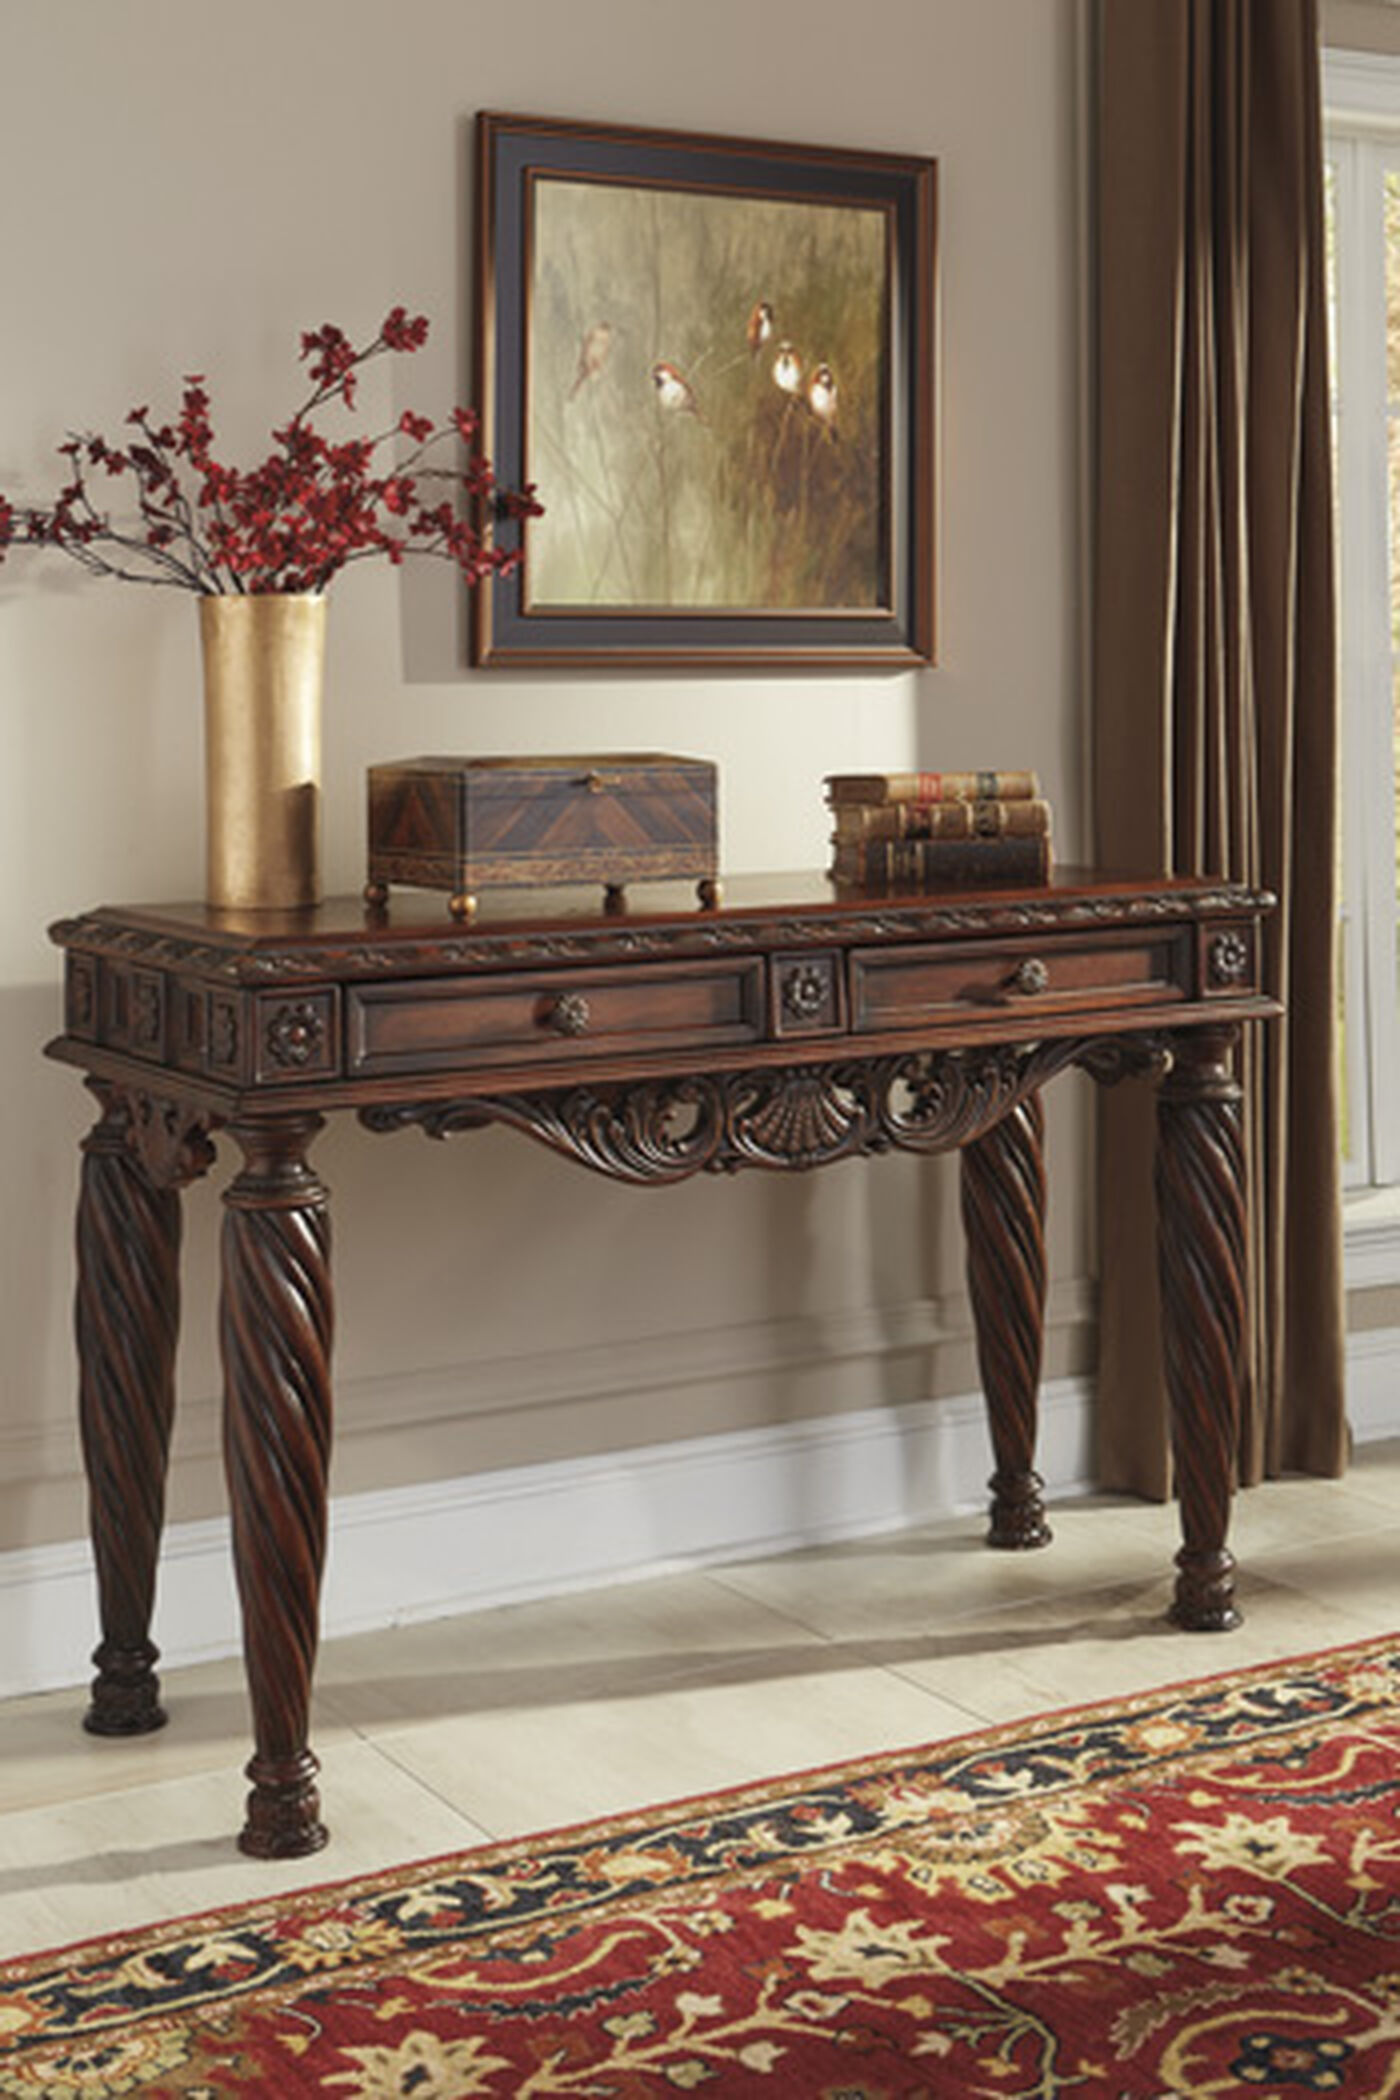 Scrolled Front Traditional Sofa Table in Dark Brown  : T963 4BIG from www.mathisbrothers.com size 667 x 1000 jpeg 119kB